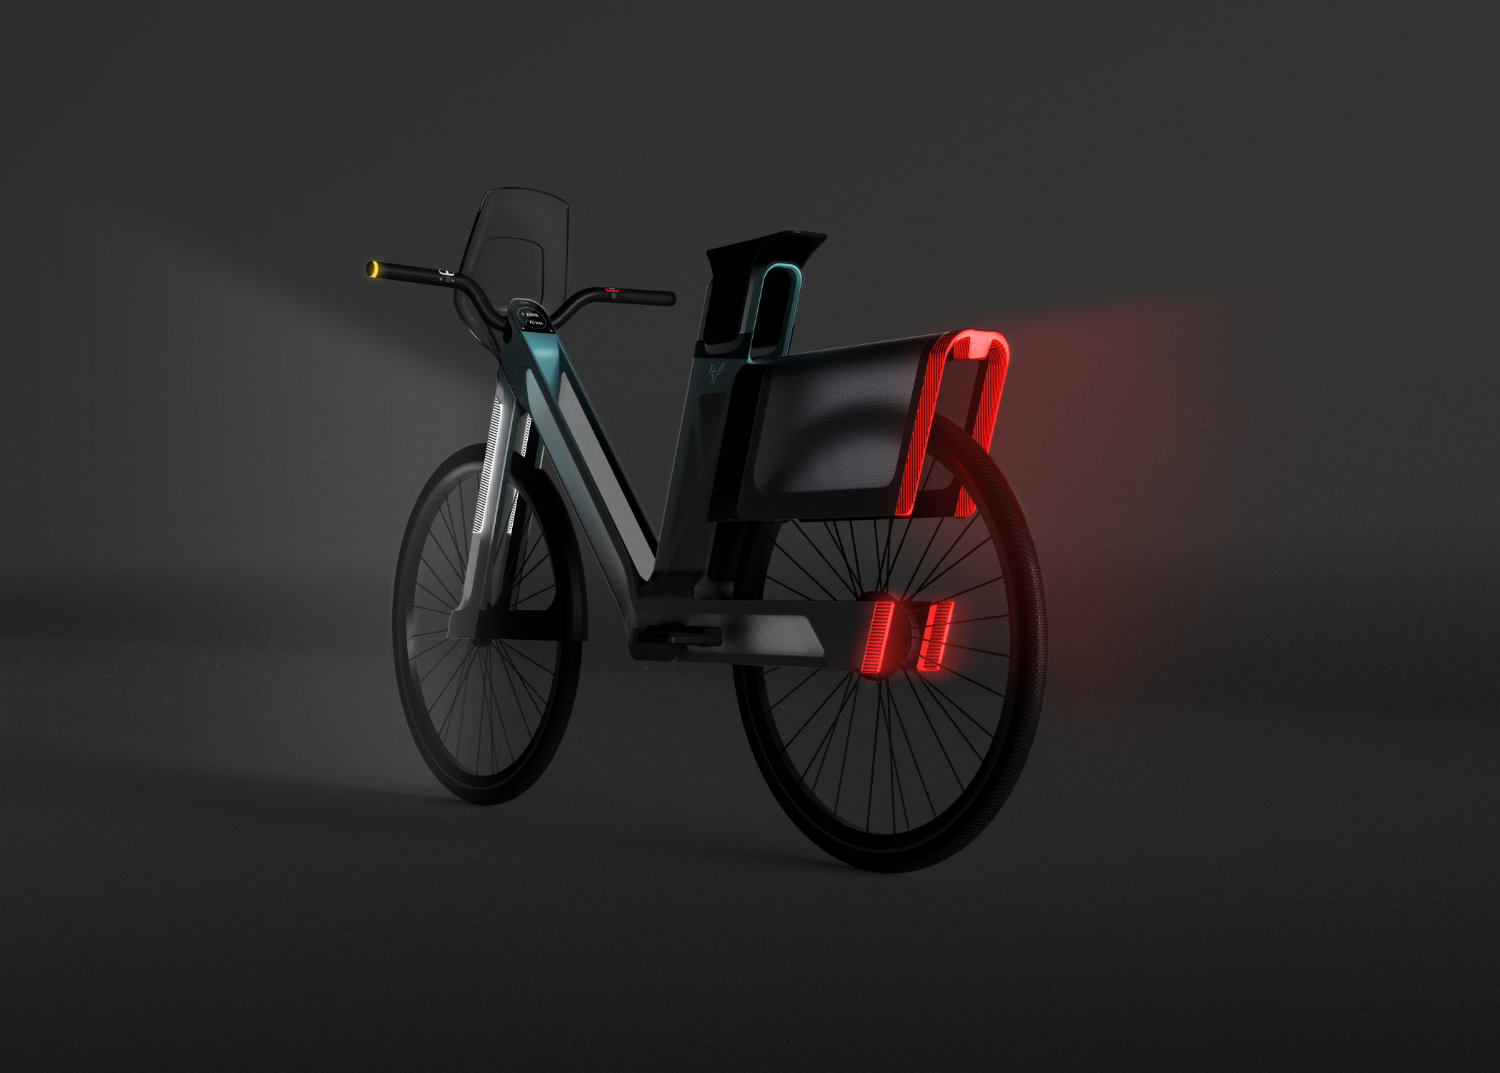 YAK, a sustainable urban mobility solution for professional riders